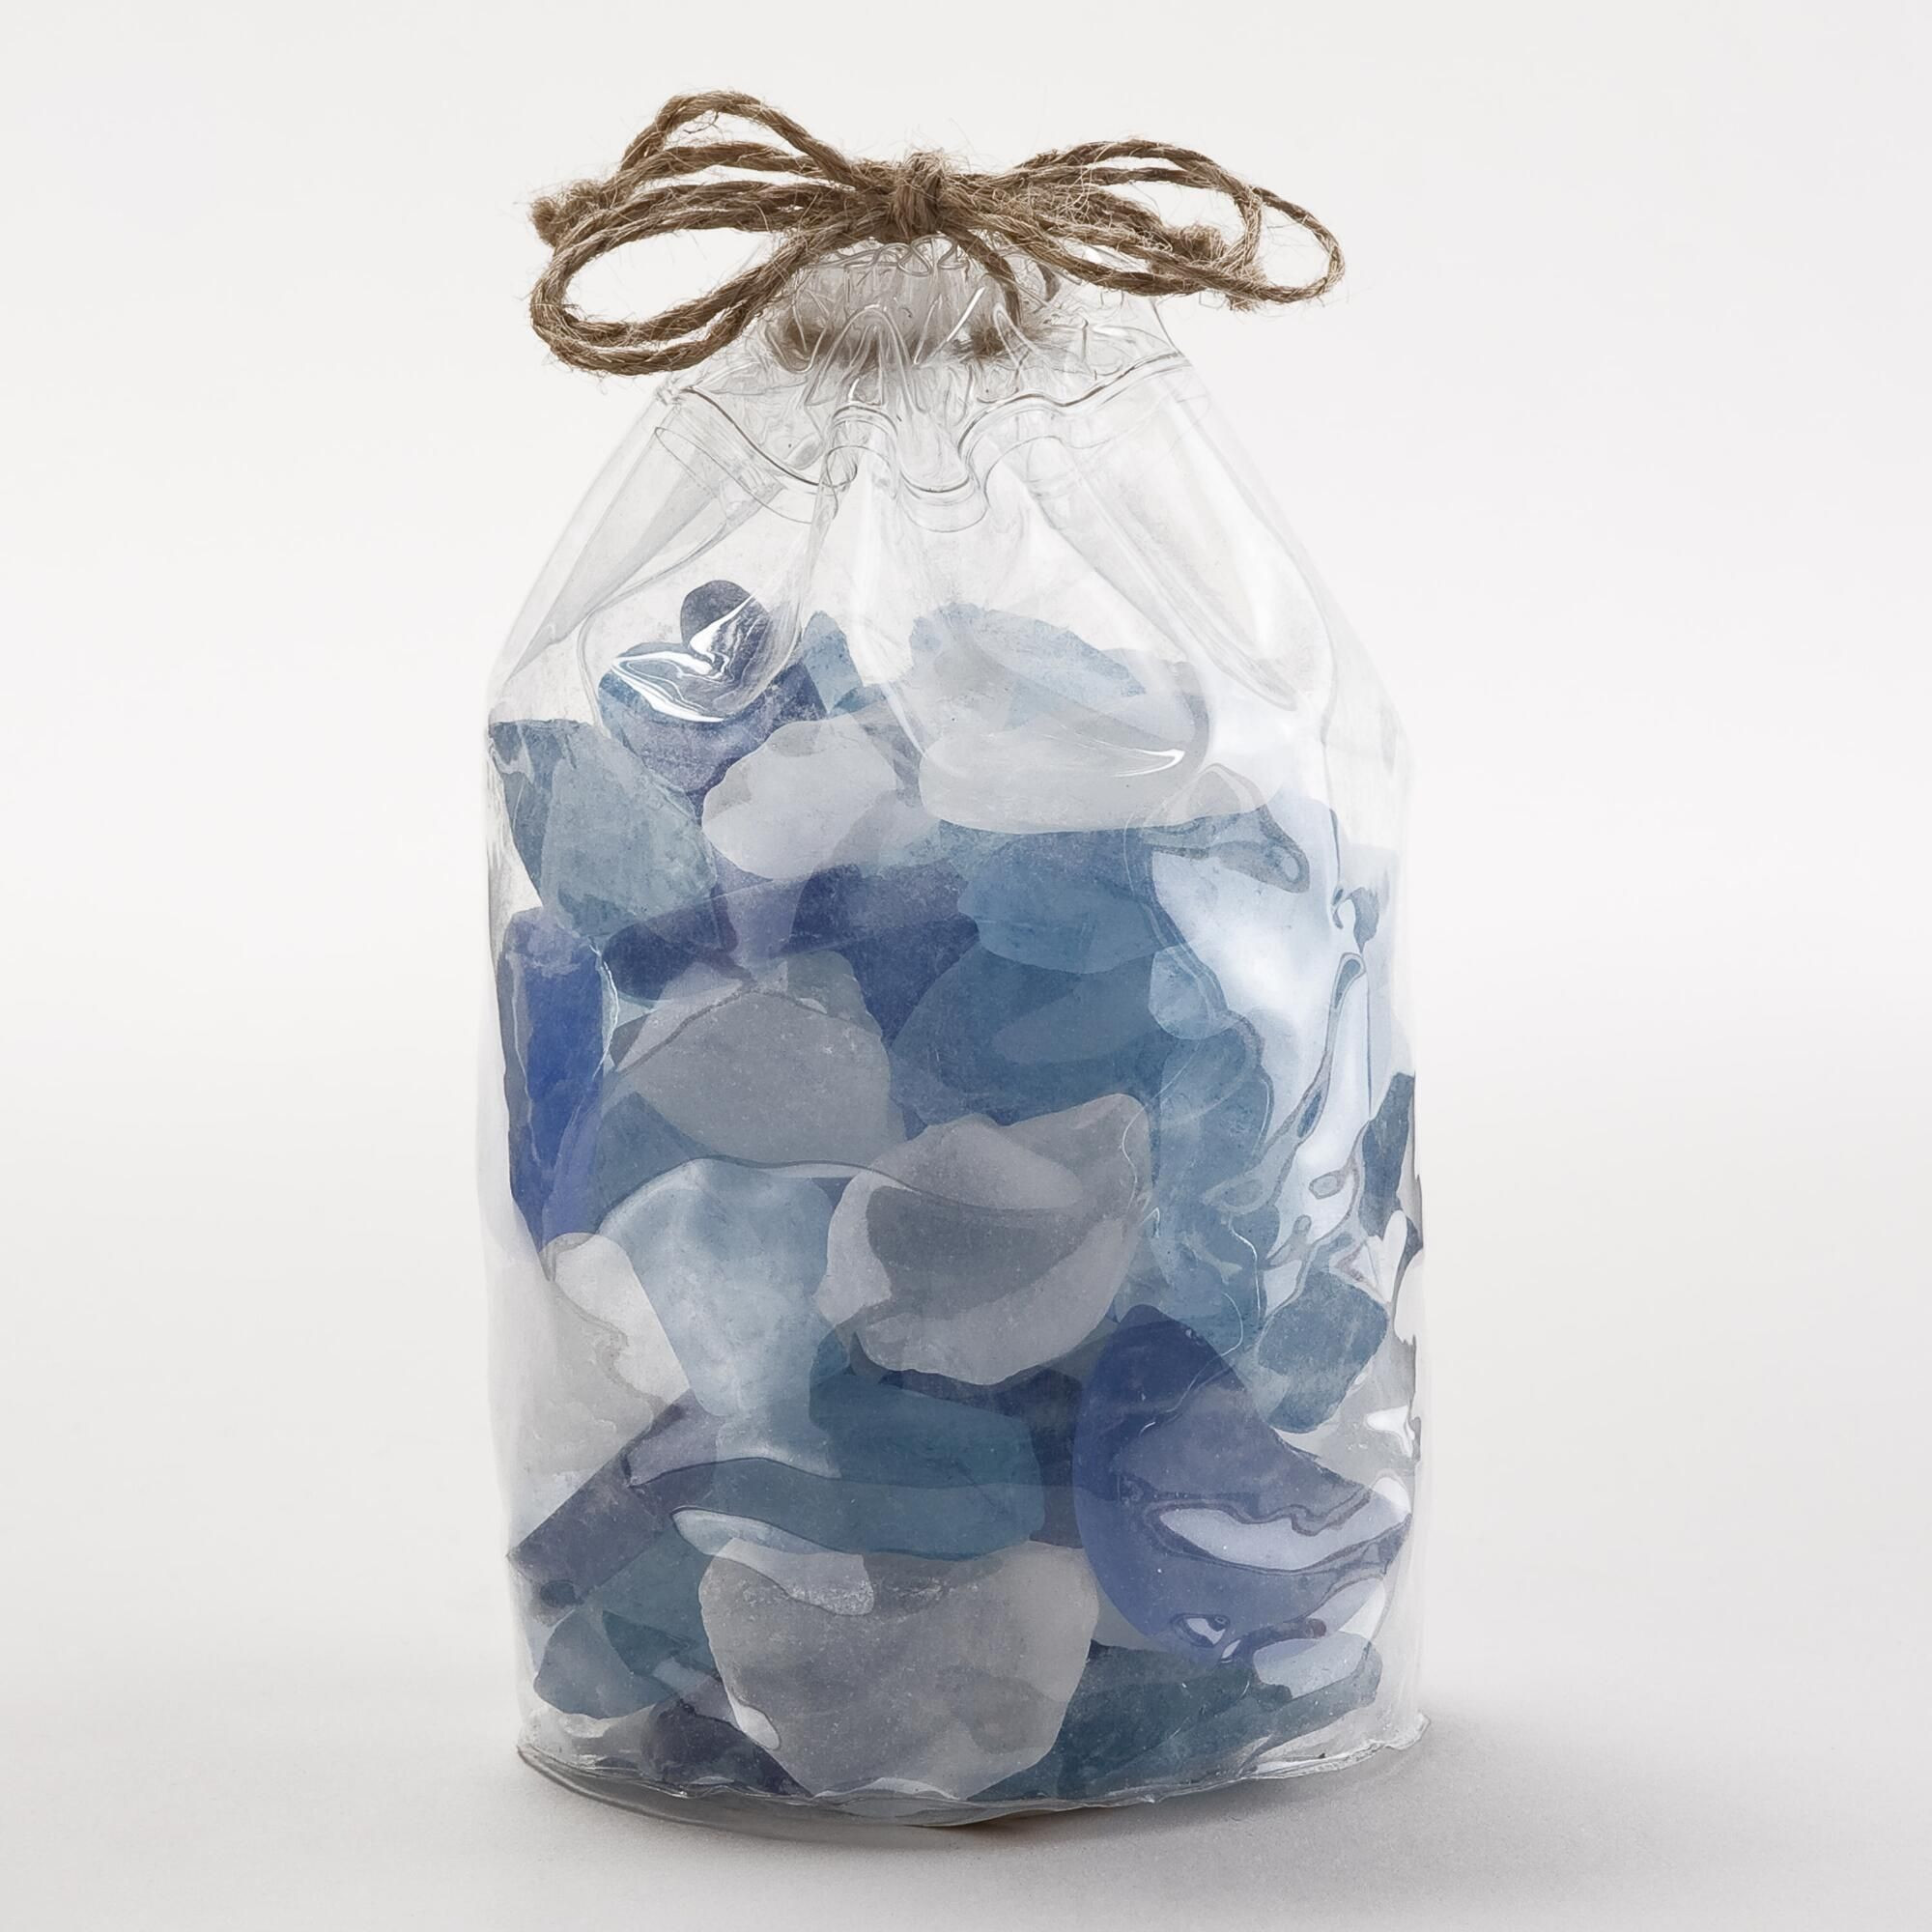 acrylic vase fillers bulk of add a touch of the ocean with our blue seaglass vase fillers use inside add a touch of the ocean with our blue seaglass vase fillers use them in